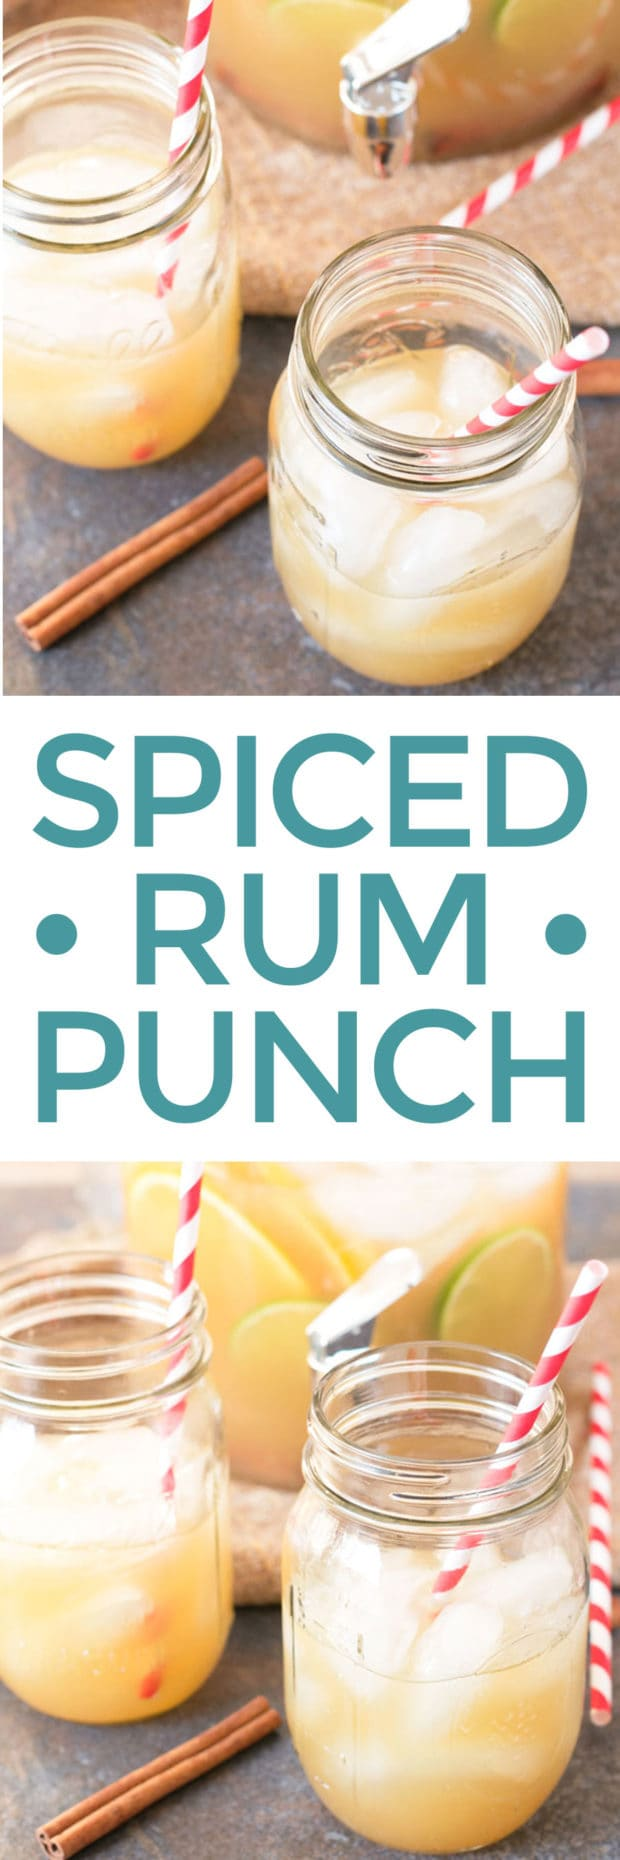 Spiced Rum Punch – Cake 'n Knife